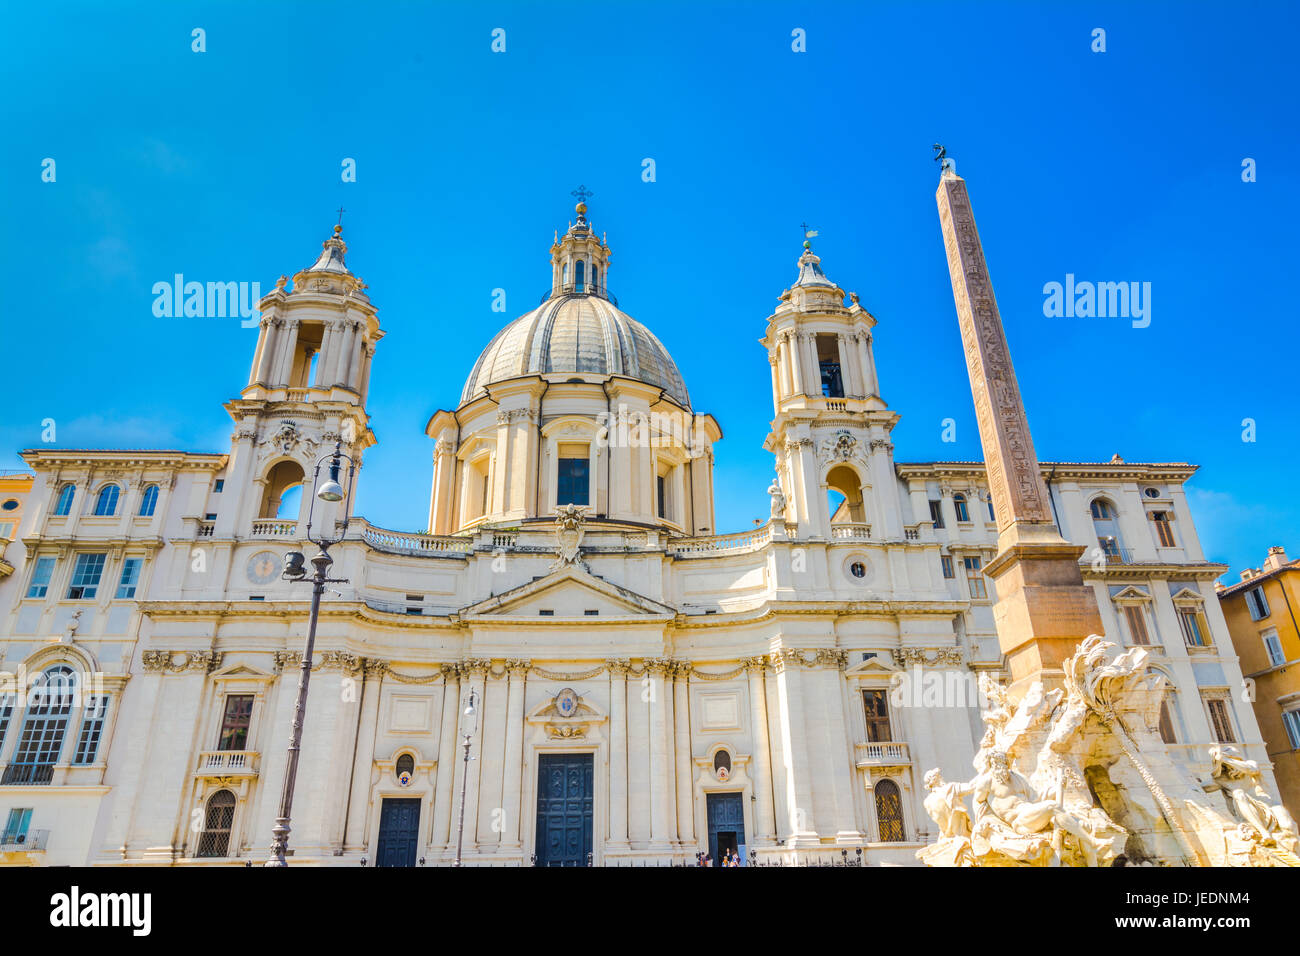 Church Sant Agnese in Agone and Fountain of the four Rivers with Egyptian obelisk on Piazza Navona in Rome, Italy - Stock Image